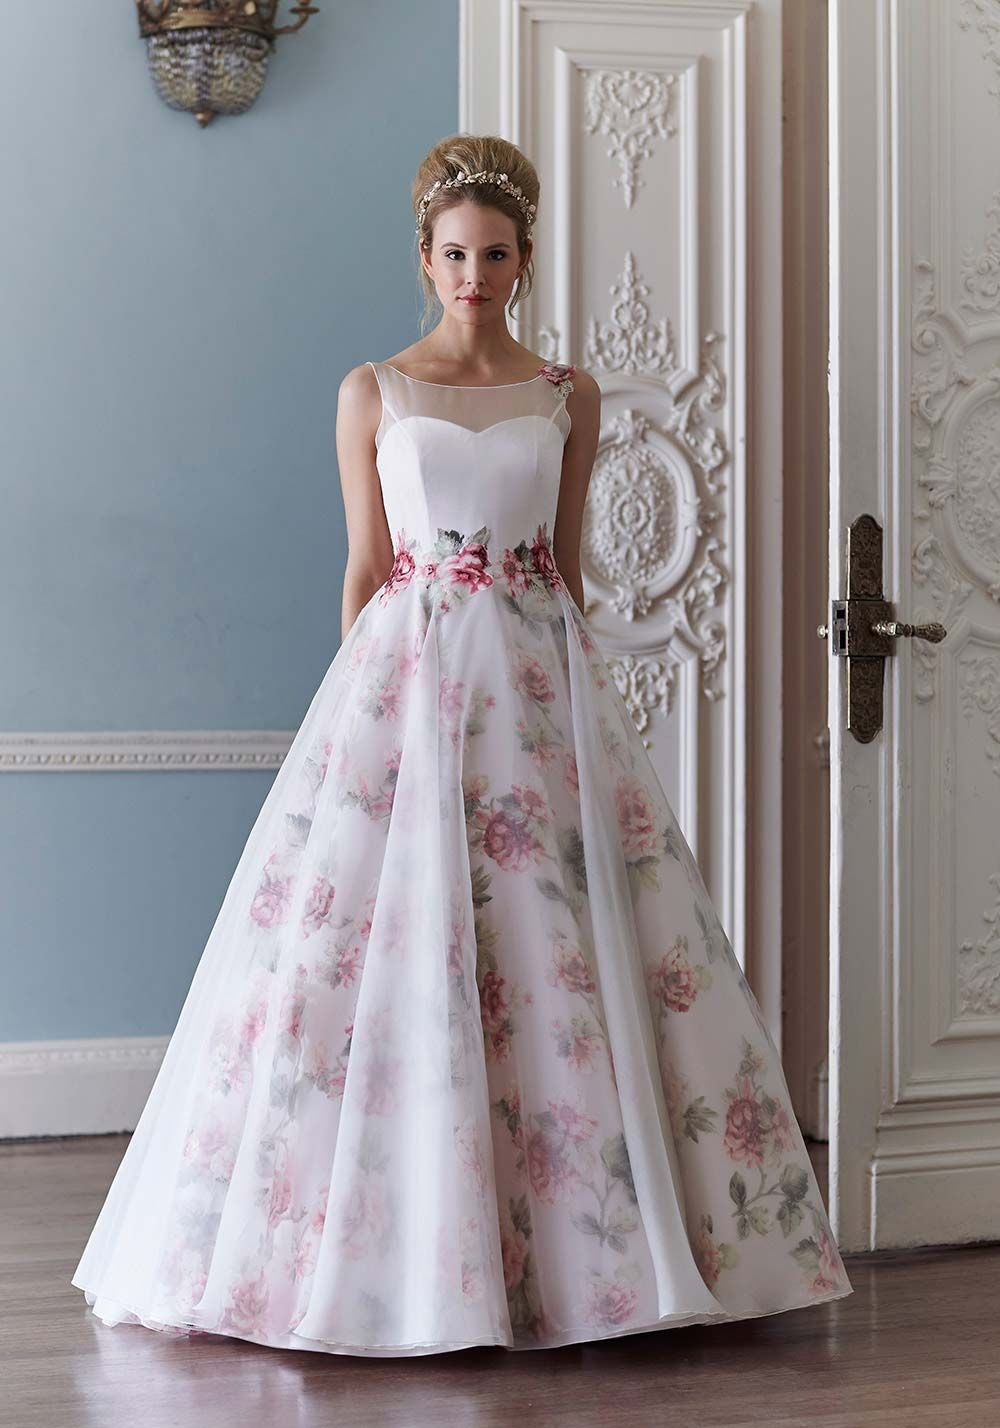 Floral wedding dress from Sassi Holford